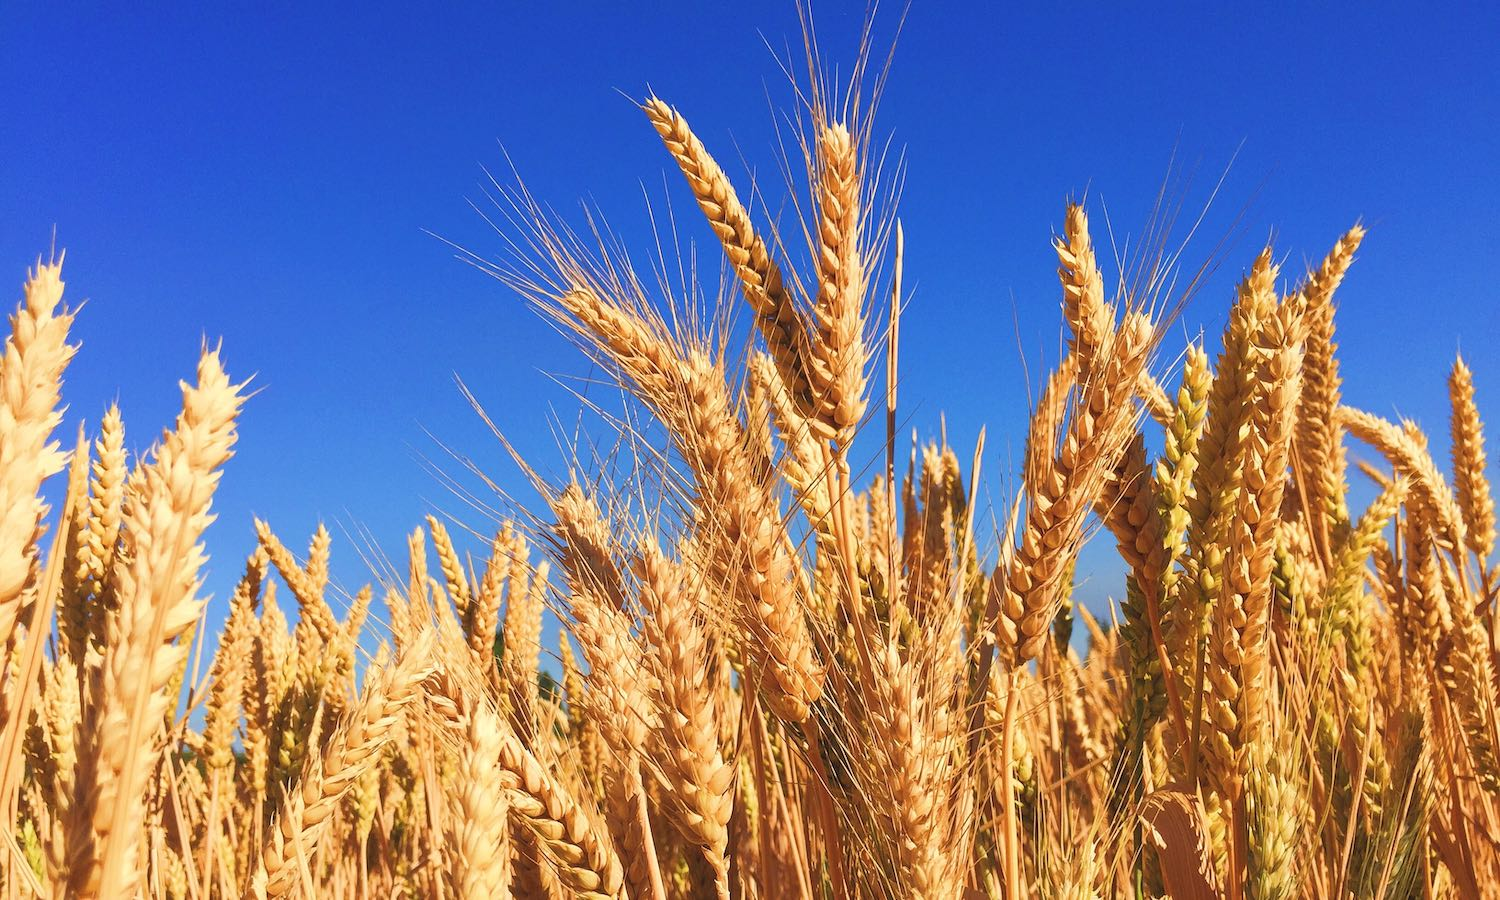 General Mills launches a regenerative wheat farming pilot program in Kansas to train farmers on regenerative practices and encourage 1 million acres to transition by 2030